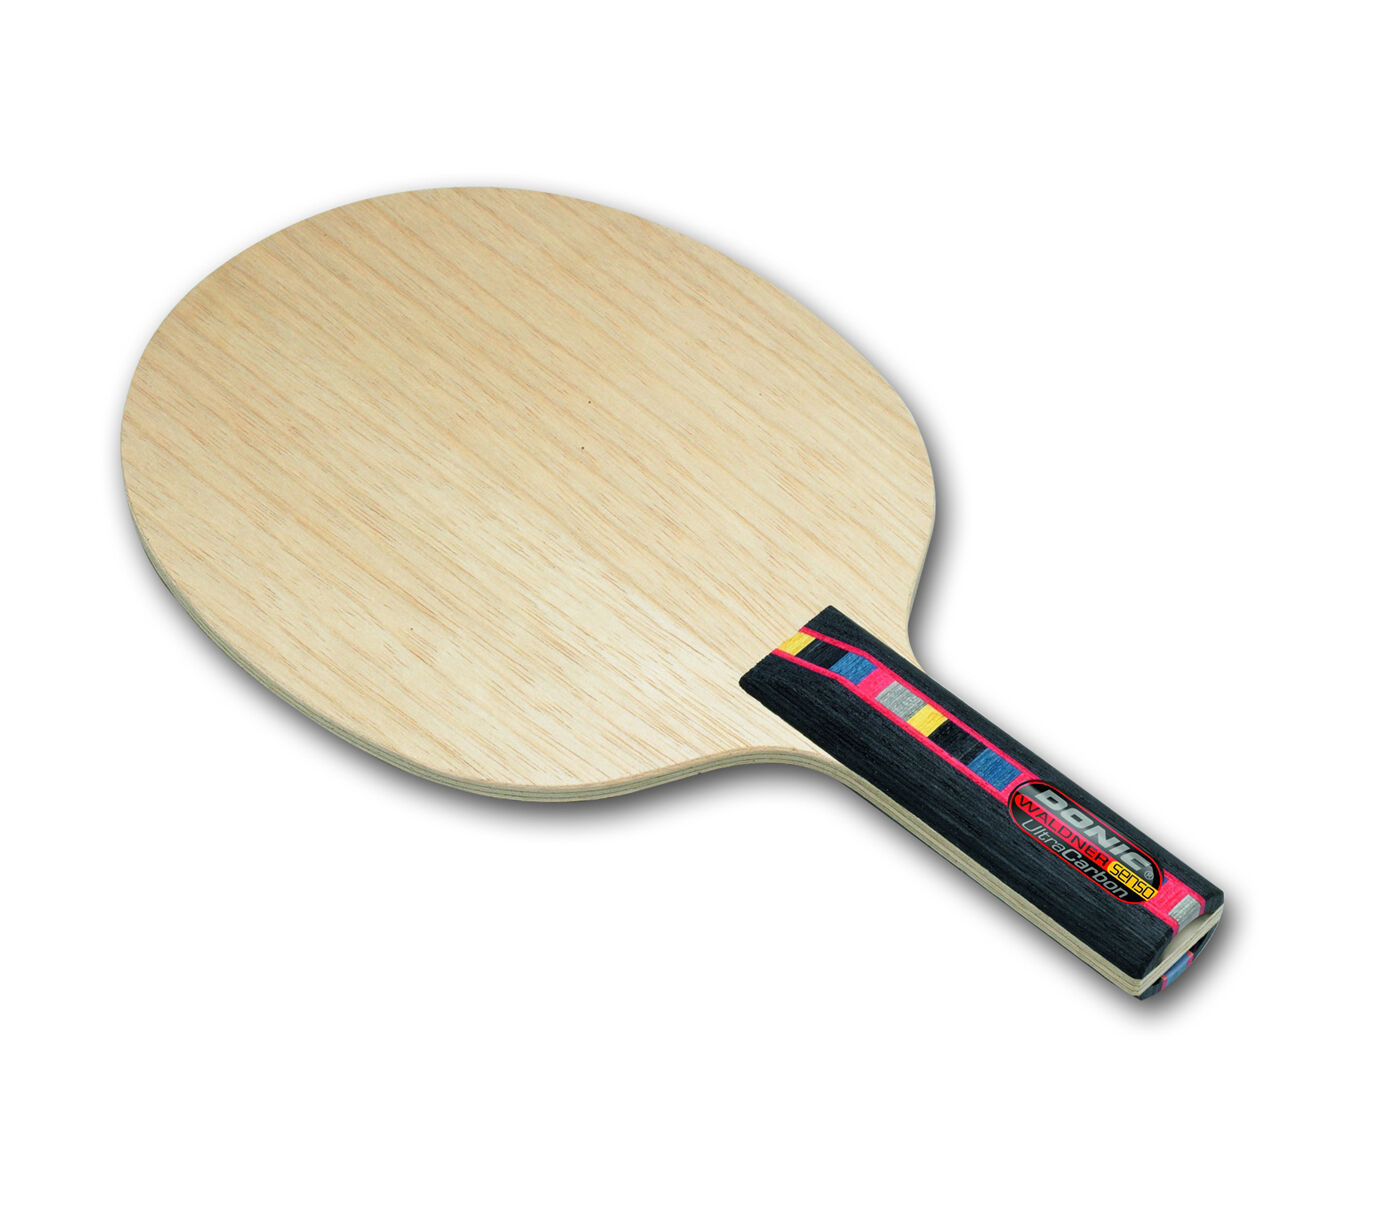 Donic Waldner Senso Ultra Charbon Tennis de Table-Bois Raquette Table